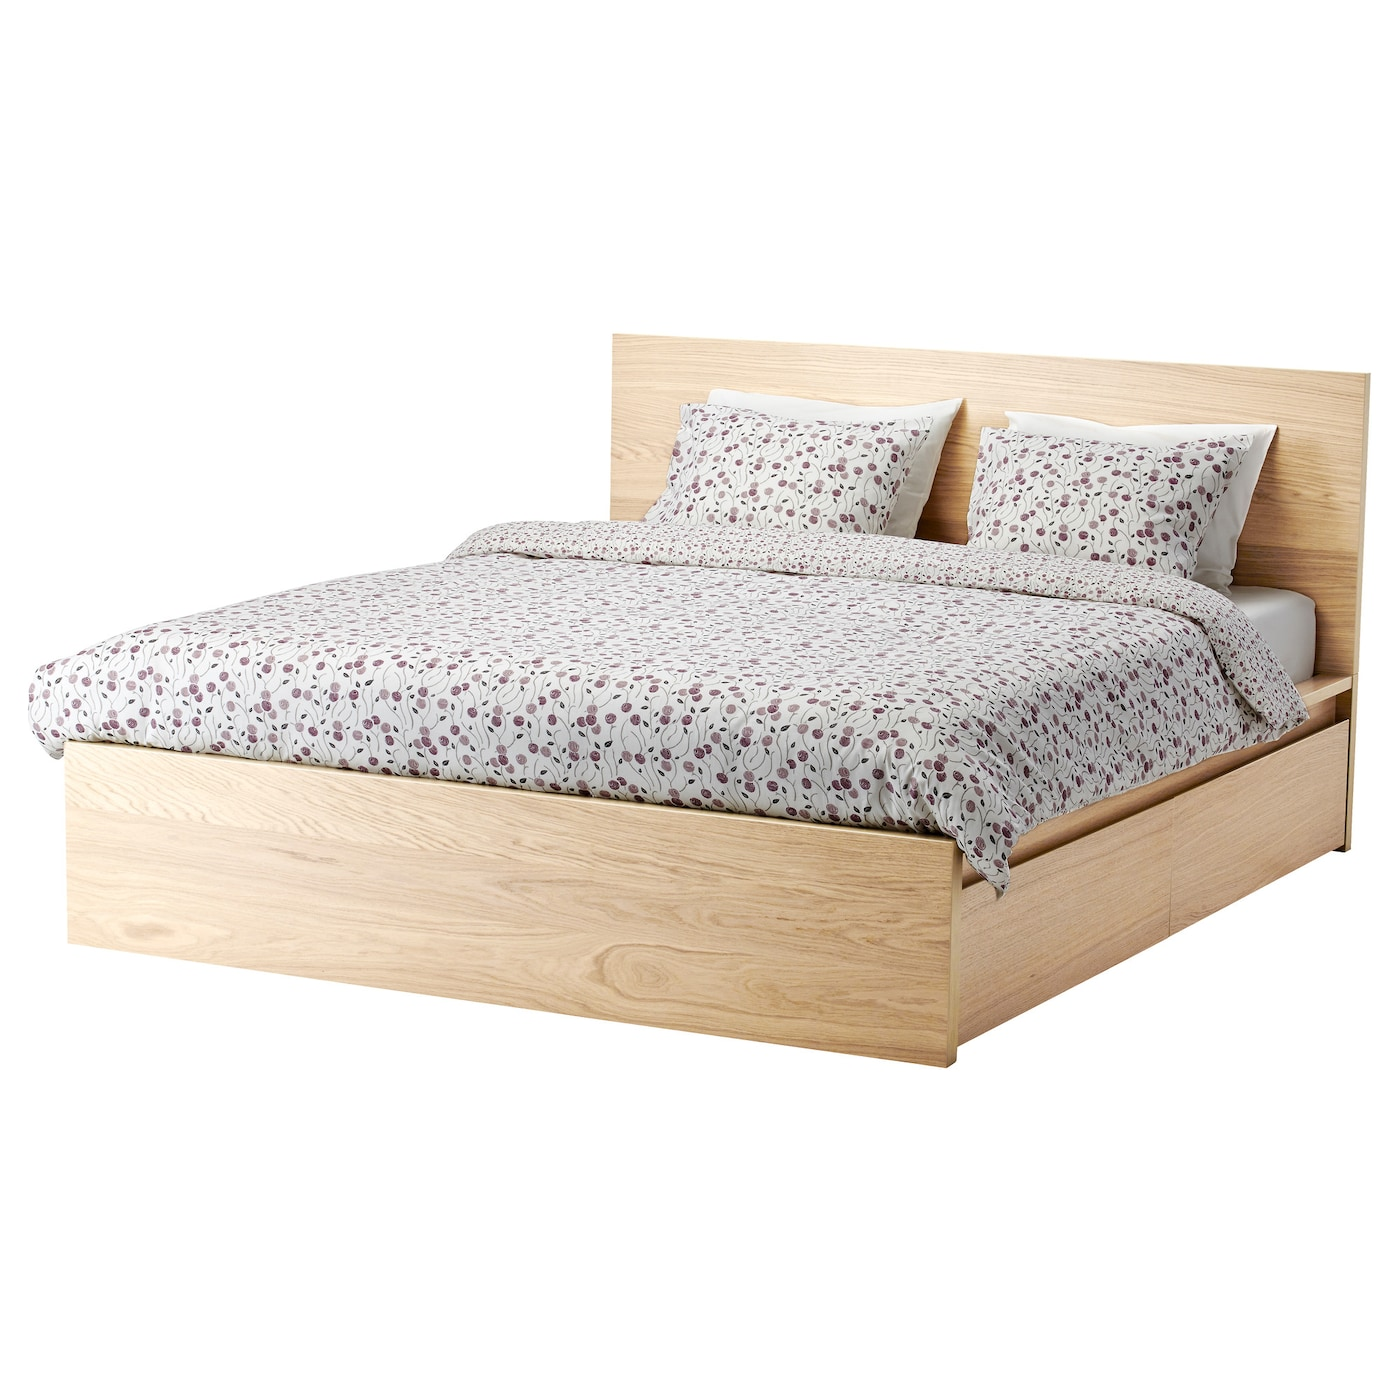 IKEA MALM bed frame, high, w 2 storage boxes Real wood veneer will make this bed age gracefully.